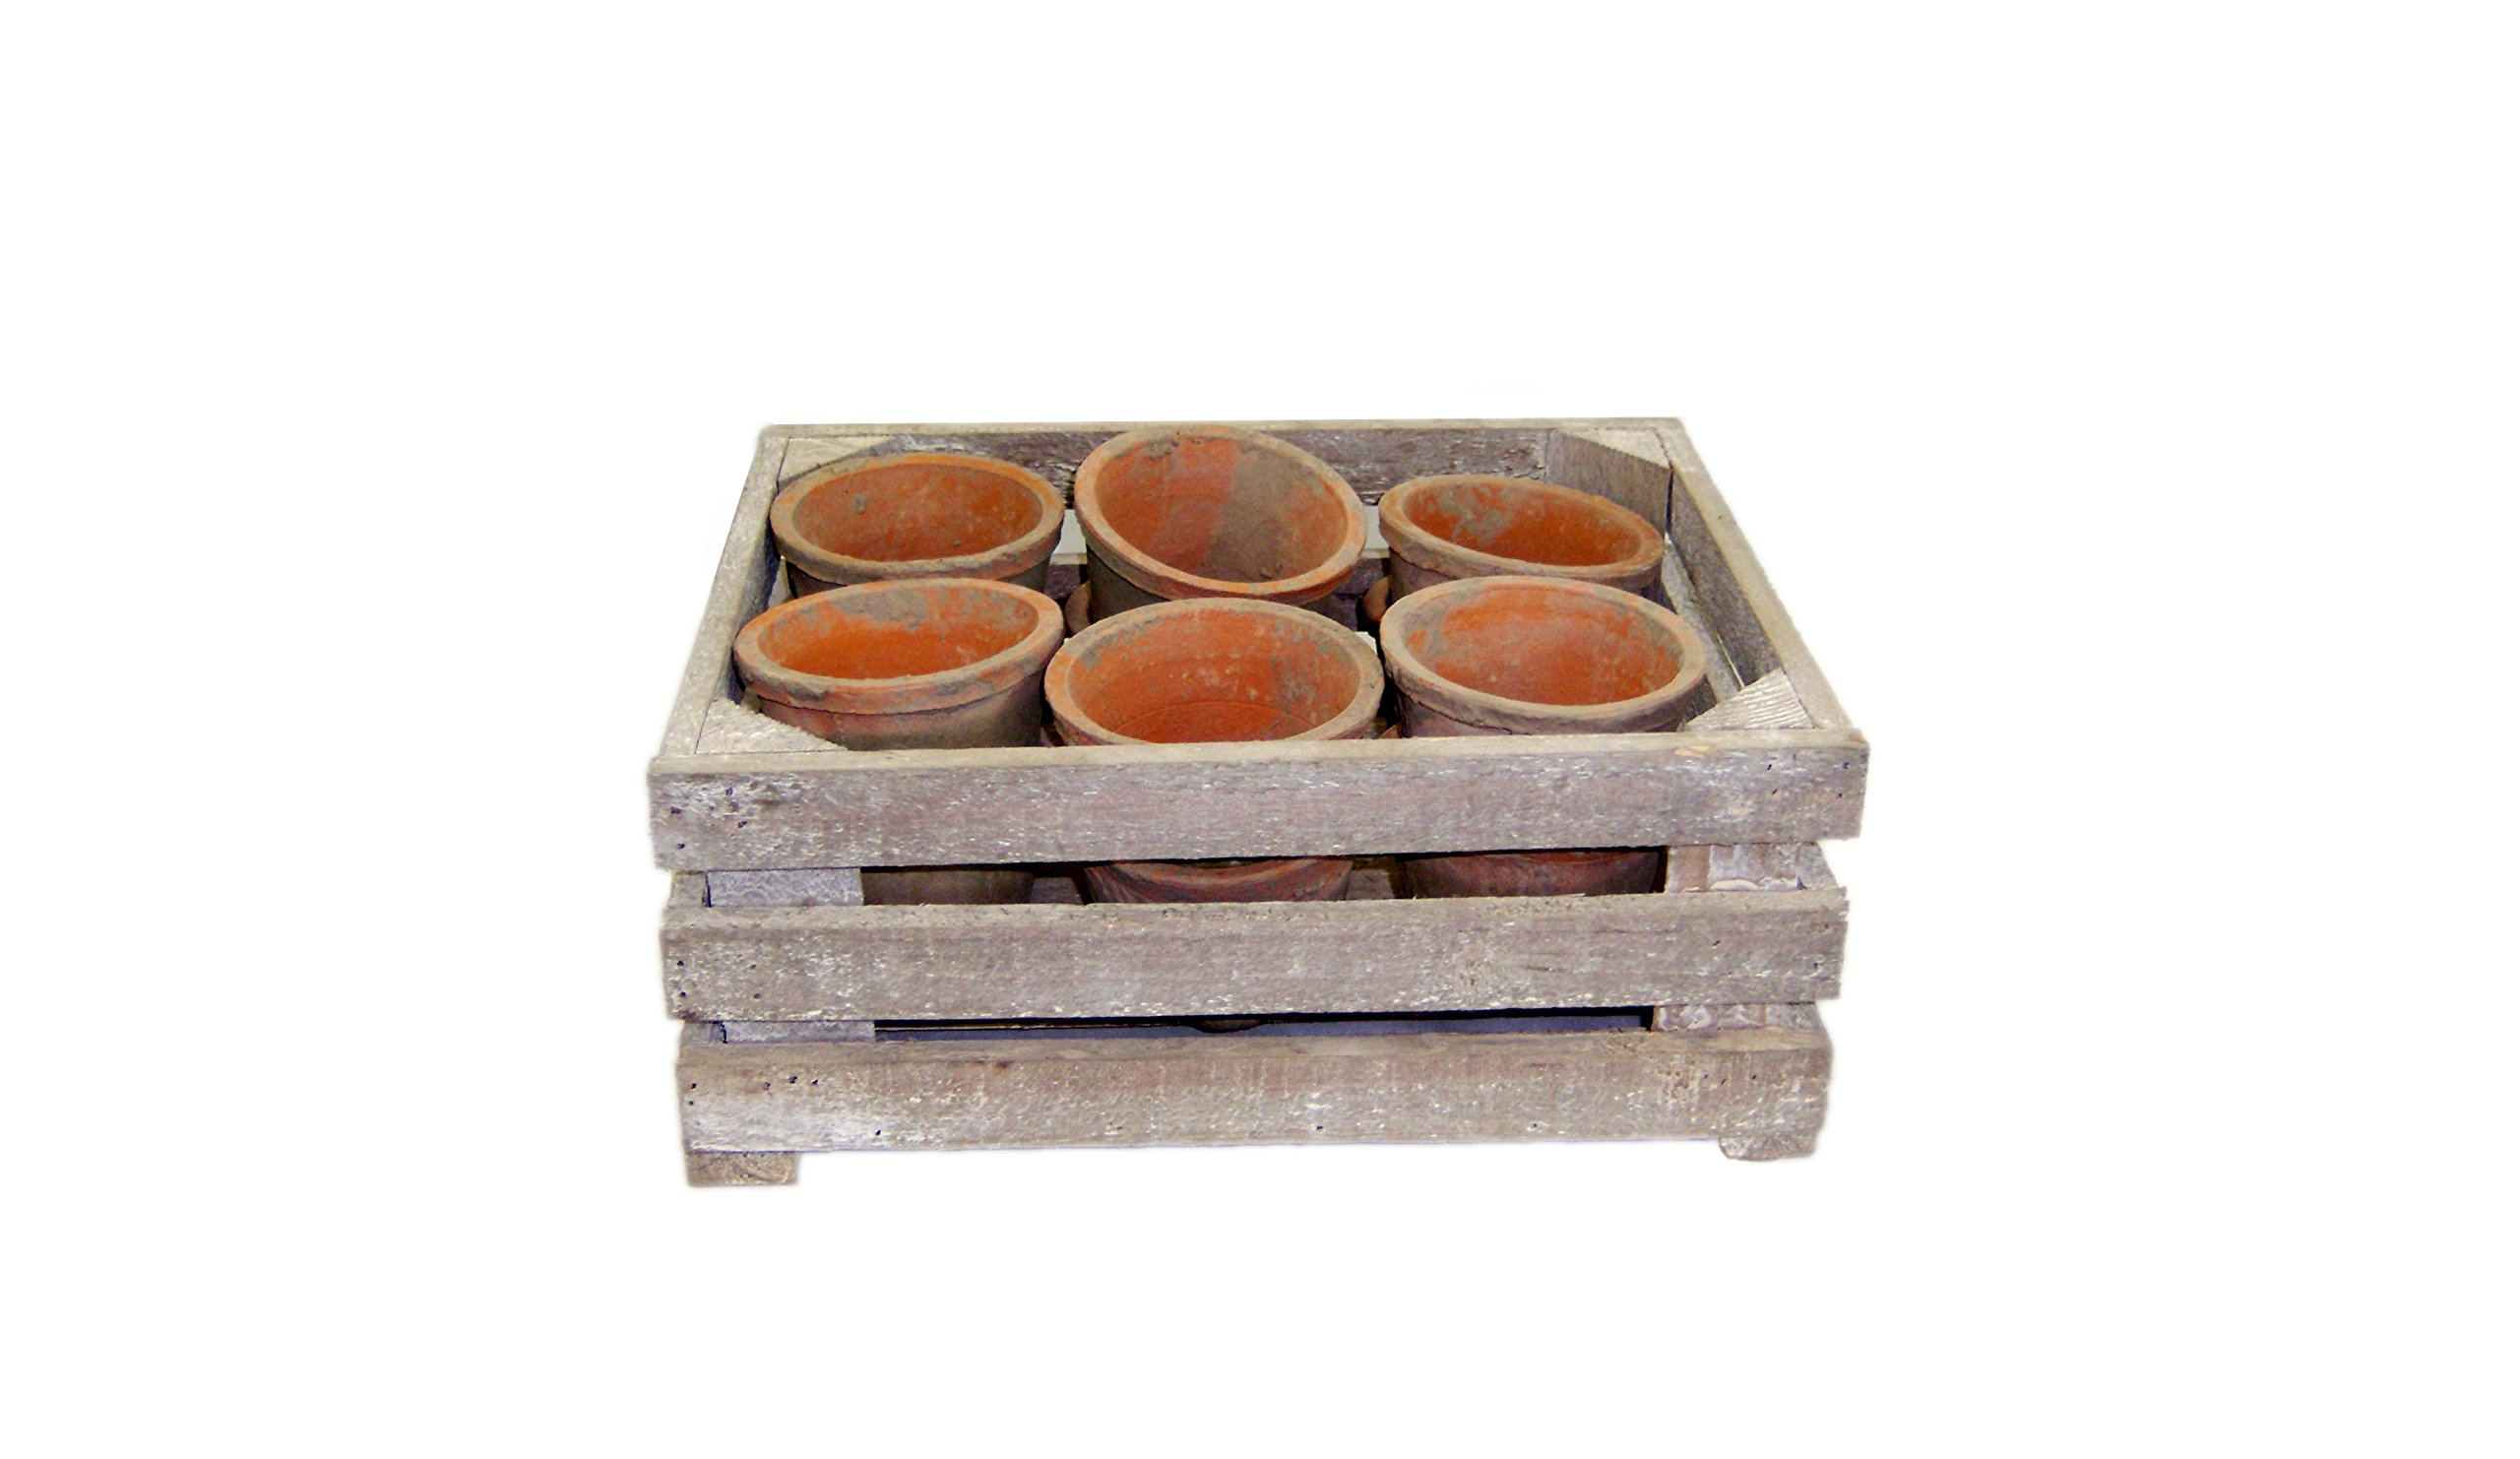 Large Antique Terracotta Pots & Large Weathered Wood Crate